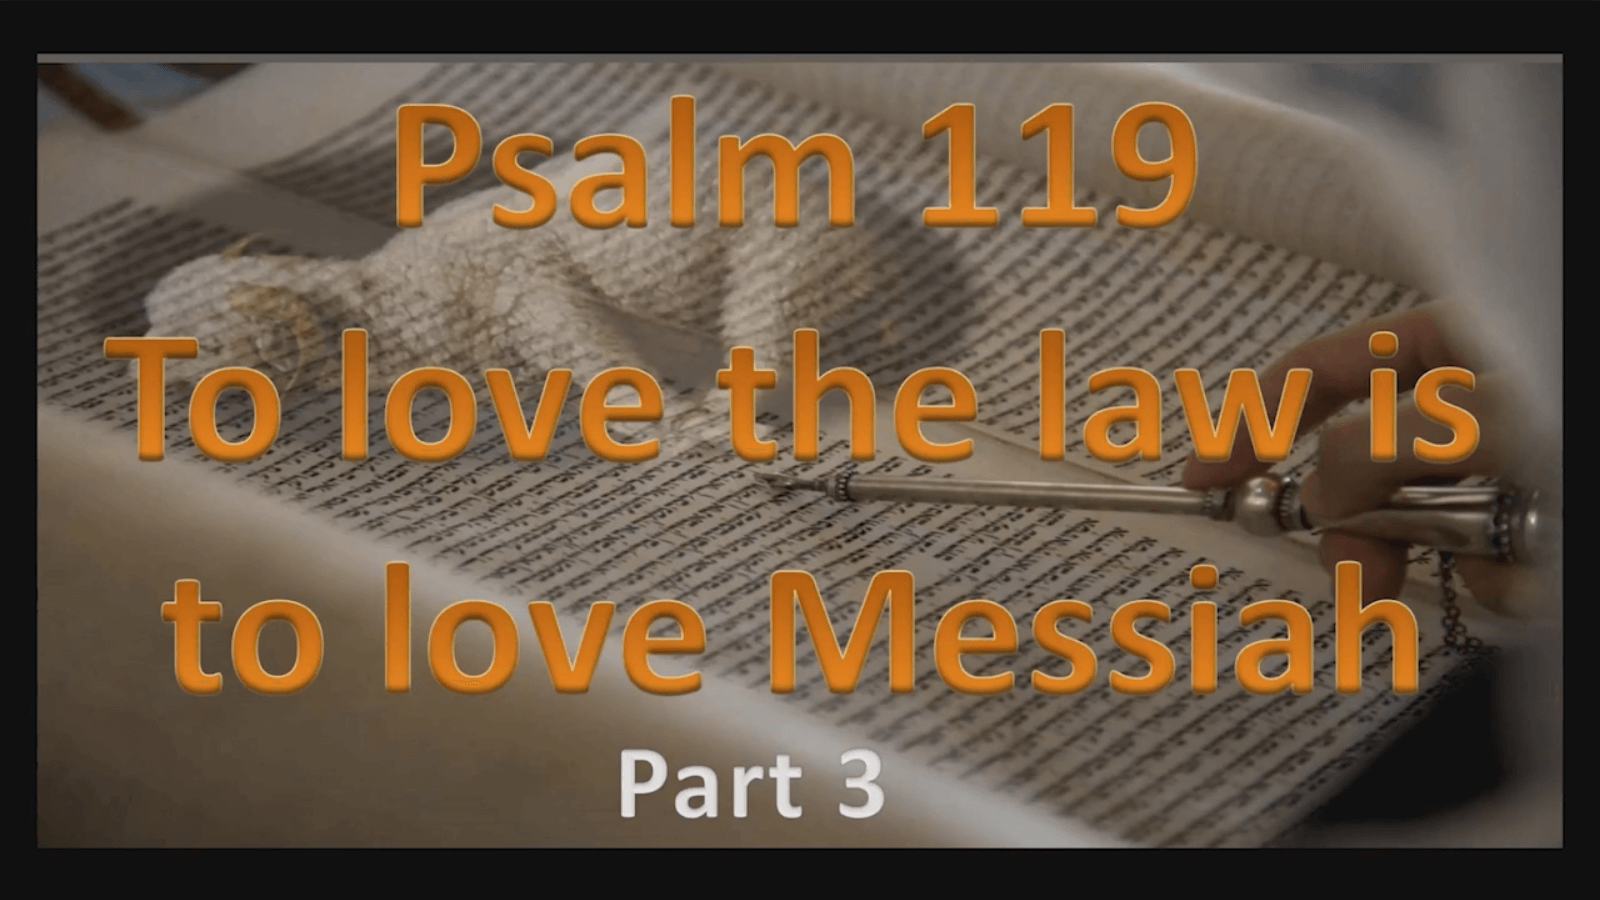 Psalm 119: To love the law is to love Messiah – Part 3